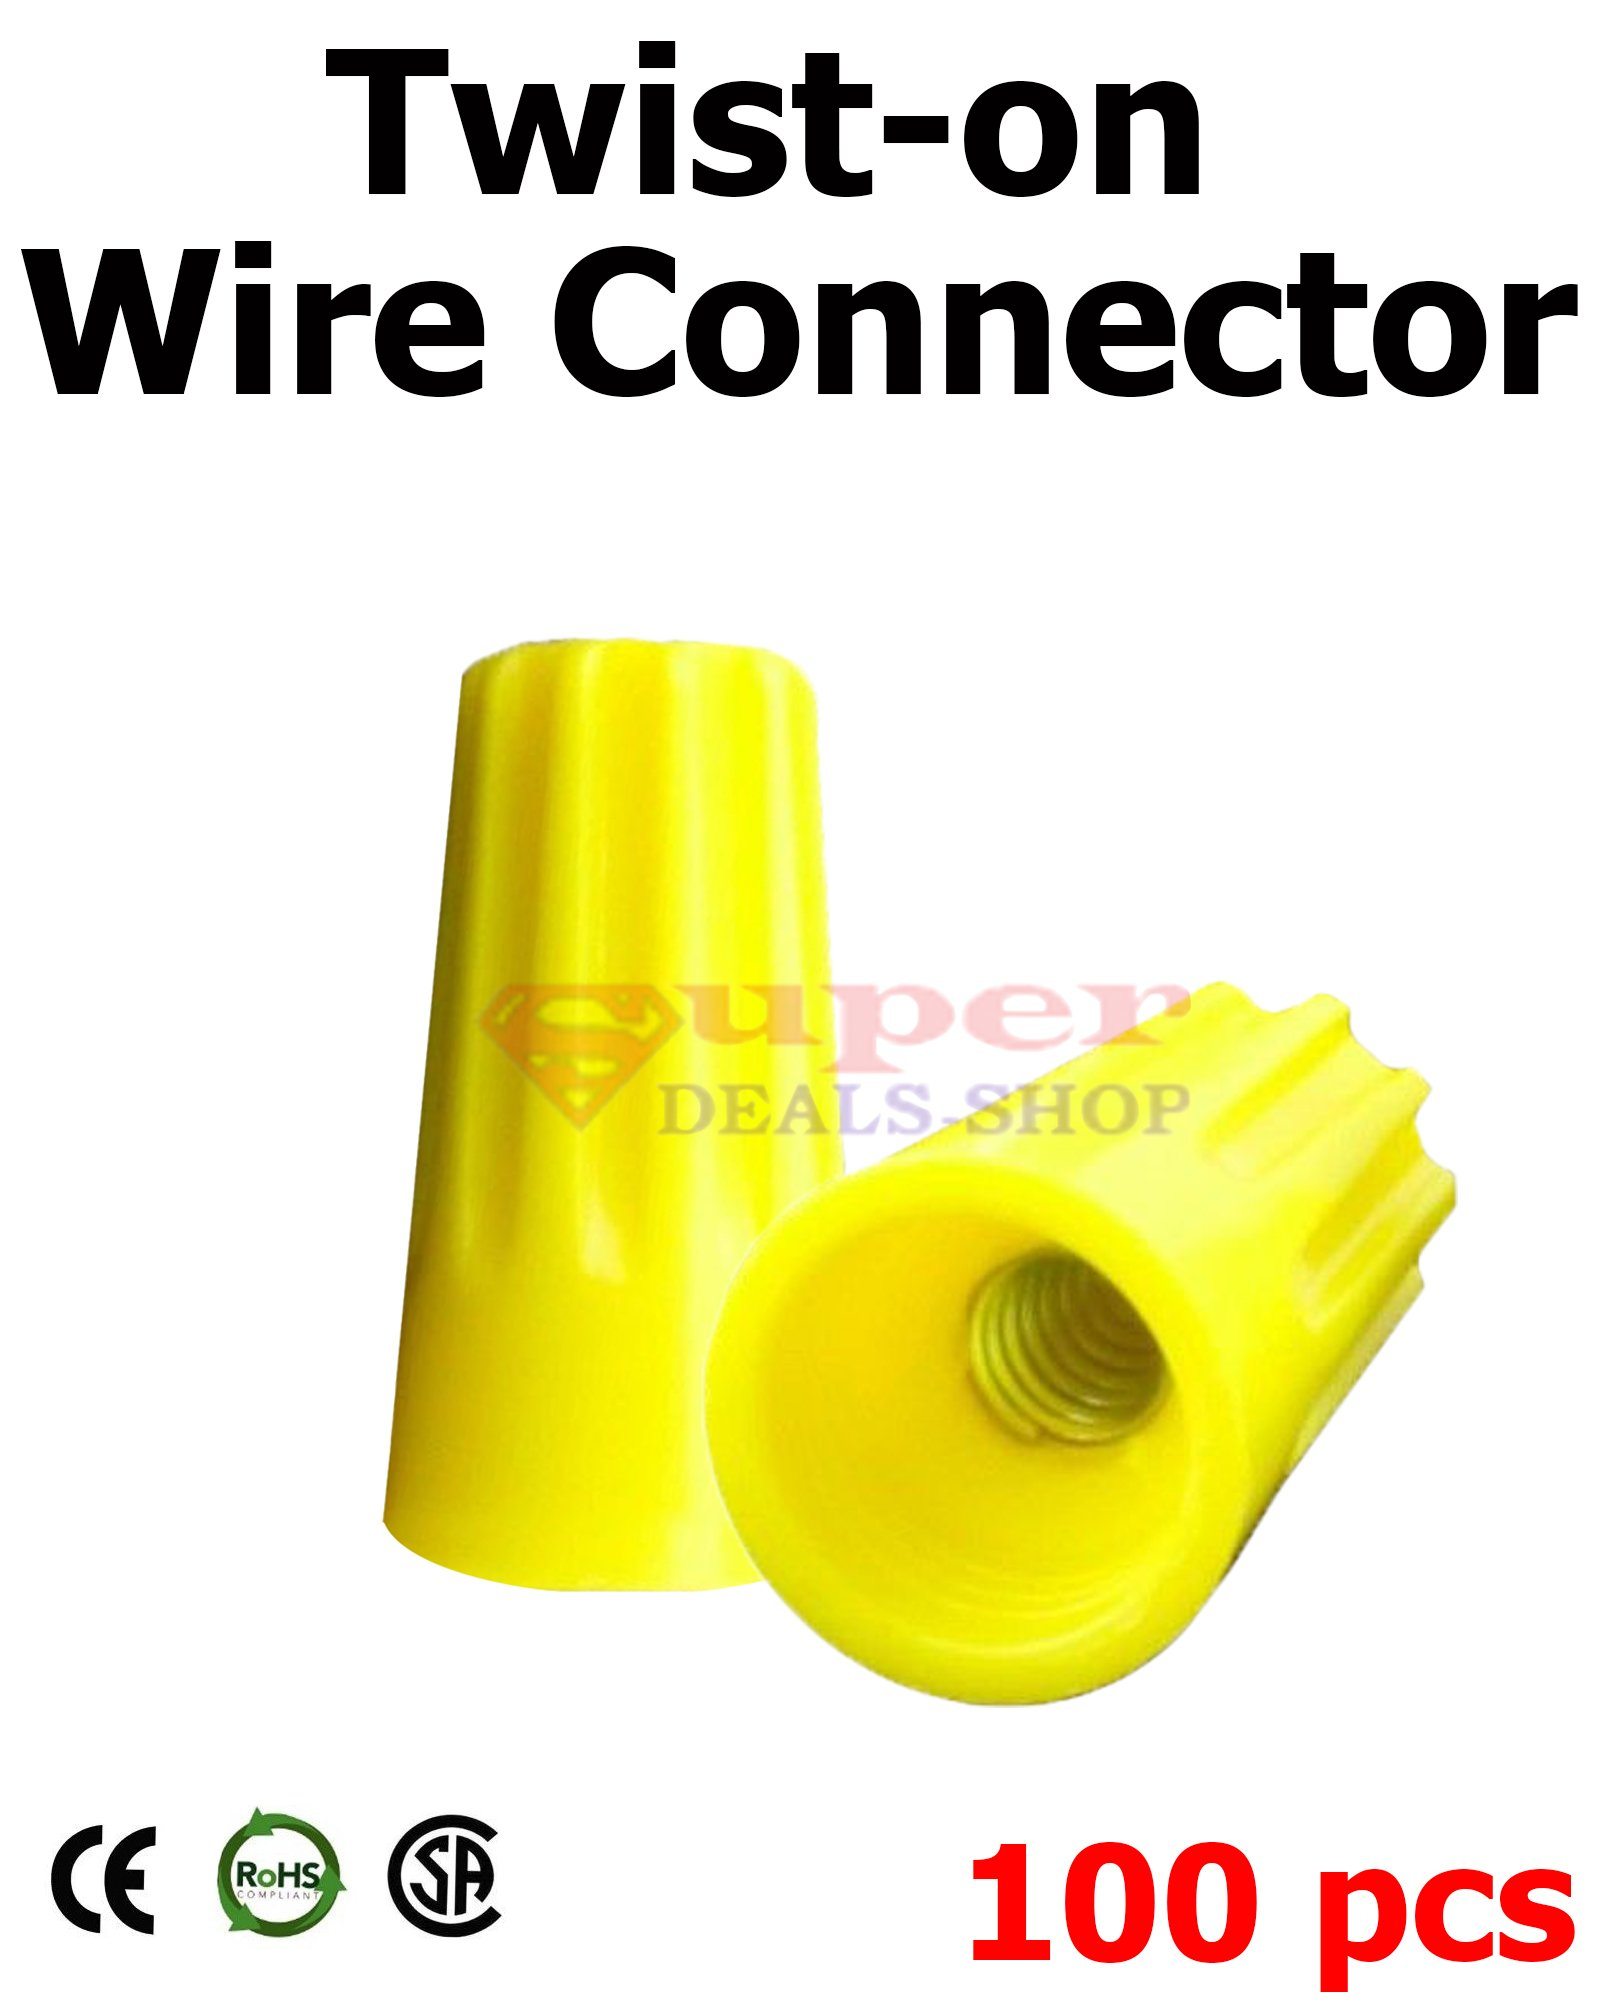 100 Pcs Yellow Wire Connector Twist On Wire Caps Easy Screw On Cap Wire Connector Wire Nuts 18-12 Gauge Super-Deals-Shop